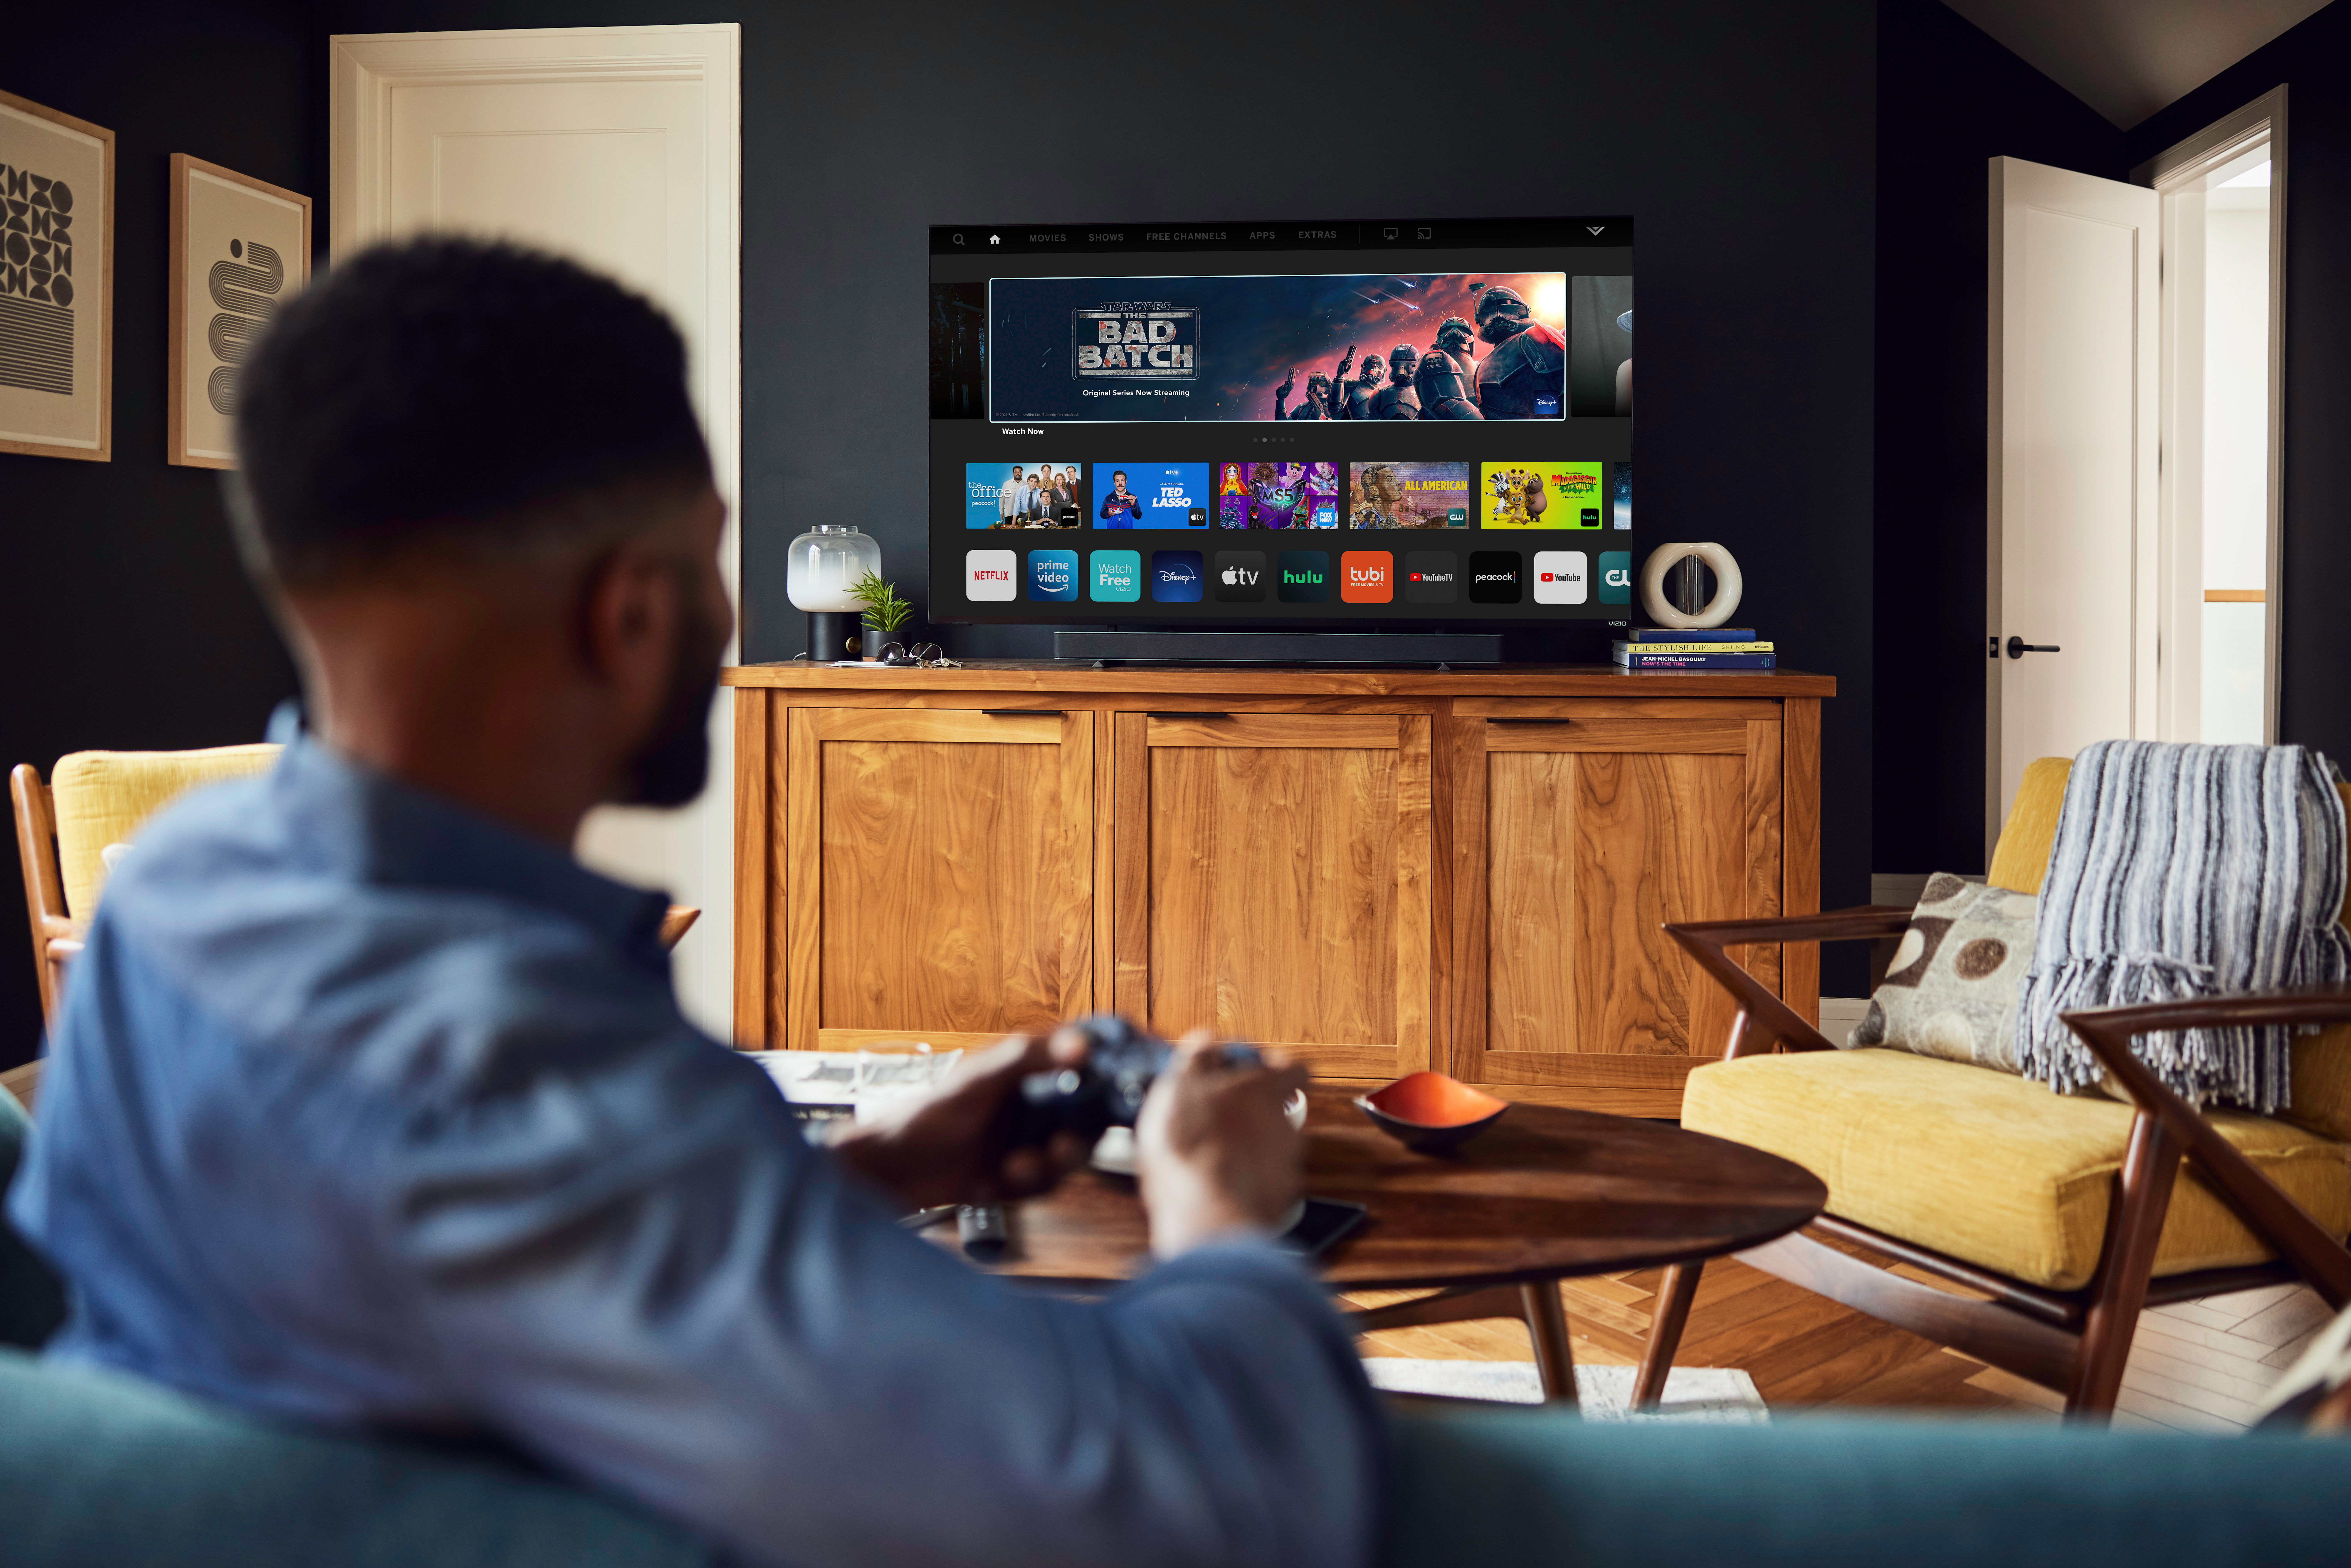 Post-Peripherals—How Smart TVs Will Take Over Streaming Consumption and Access